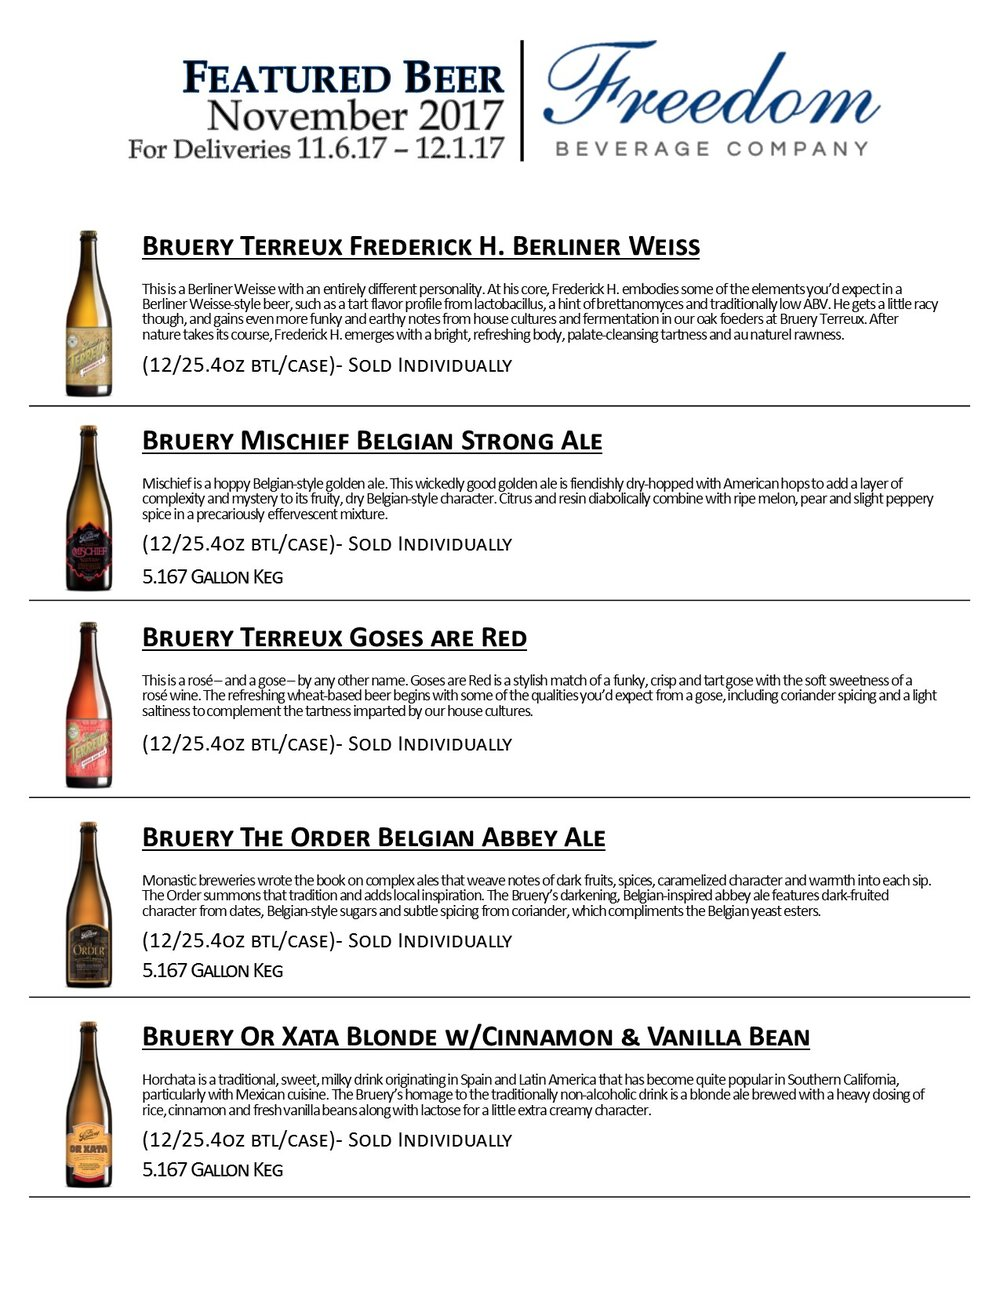 November 2017 Featured Beer - WEBSITE.jpg